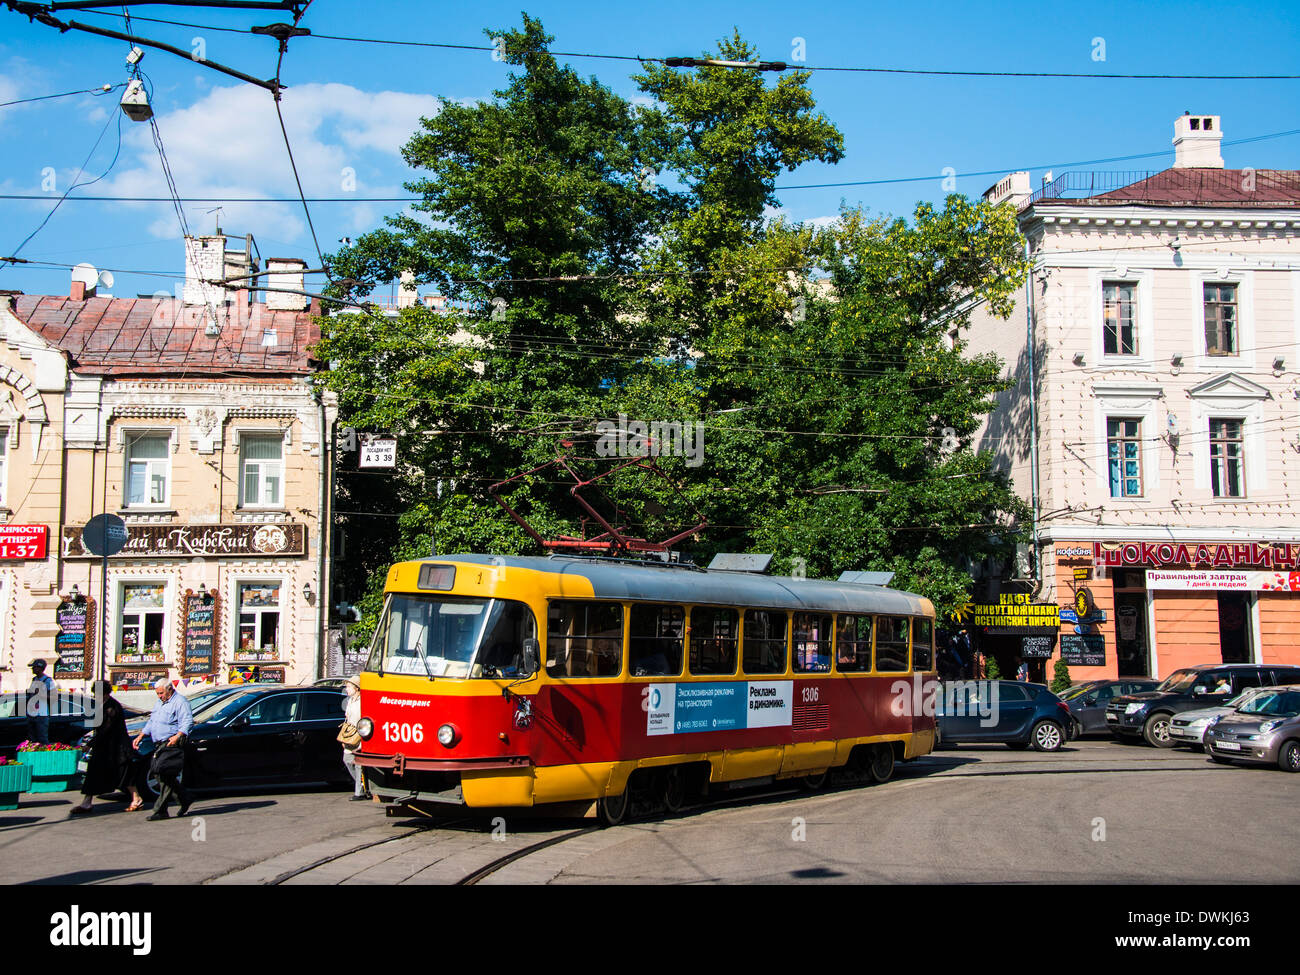 Tram in Moscow, Russia, Europe - Stock Image